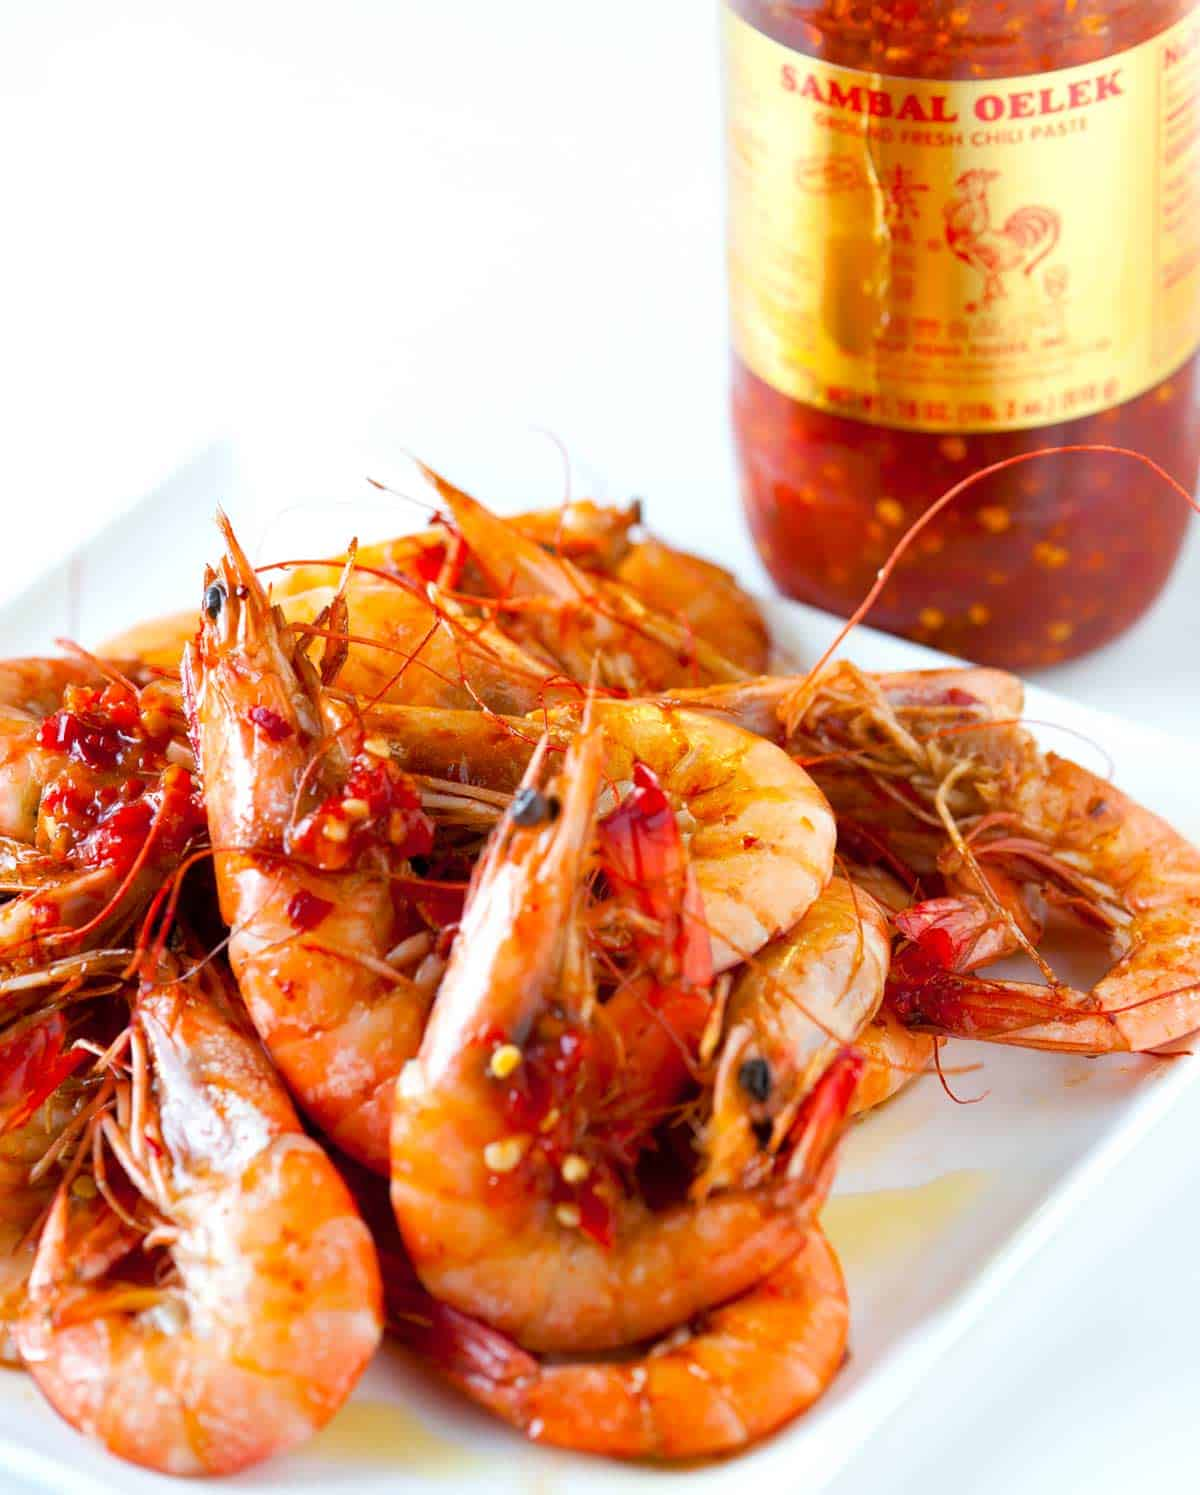 How to Make Chili Shrimp in the Oven